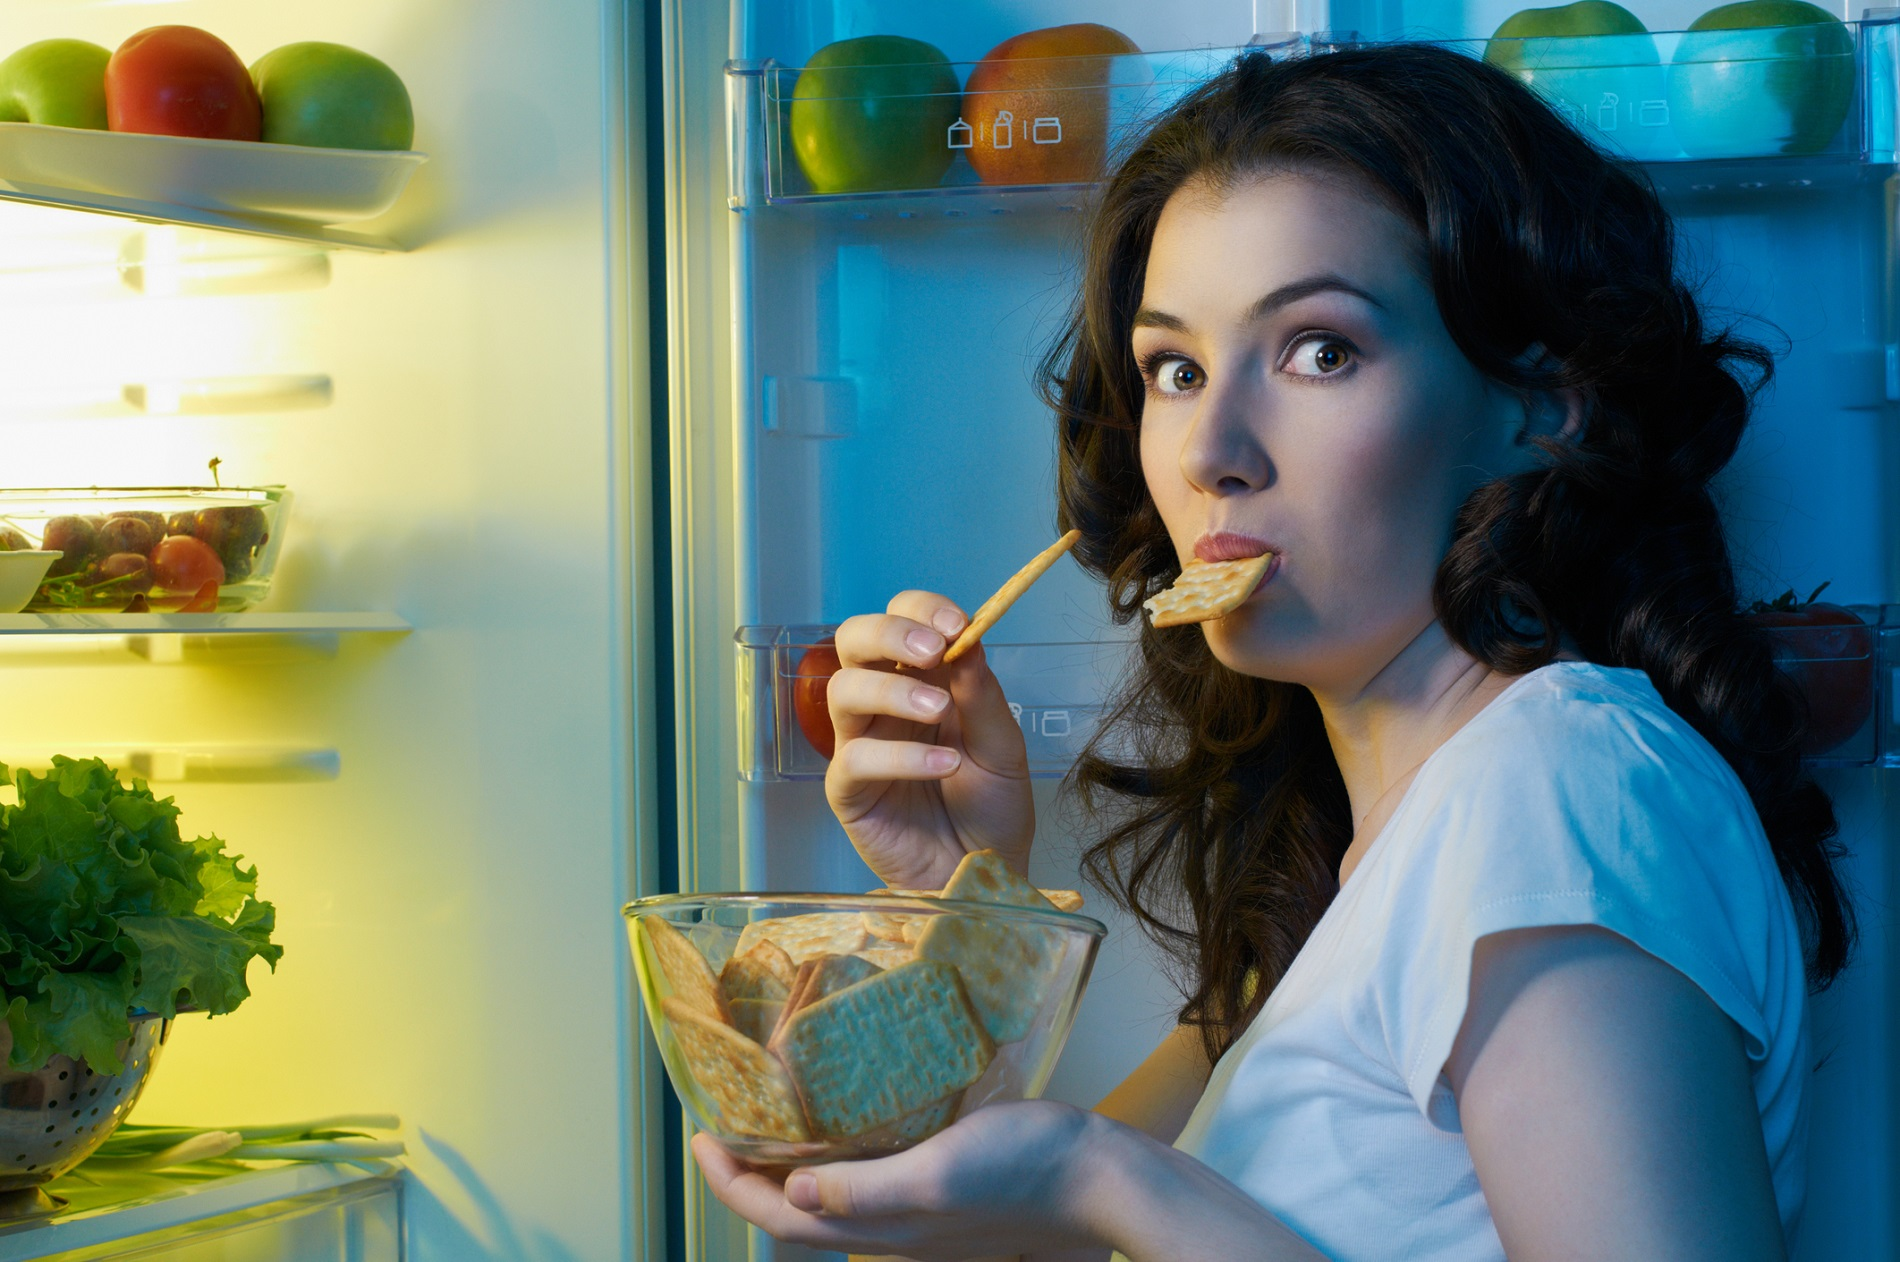 dancer health - how to avoid late night snacks